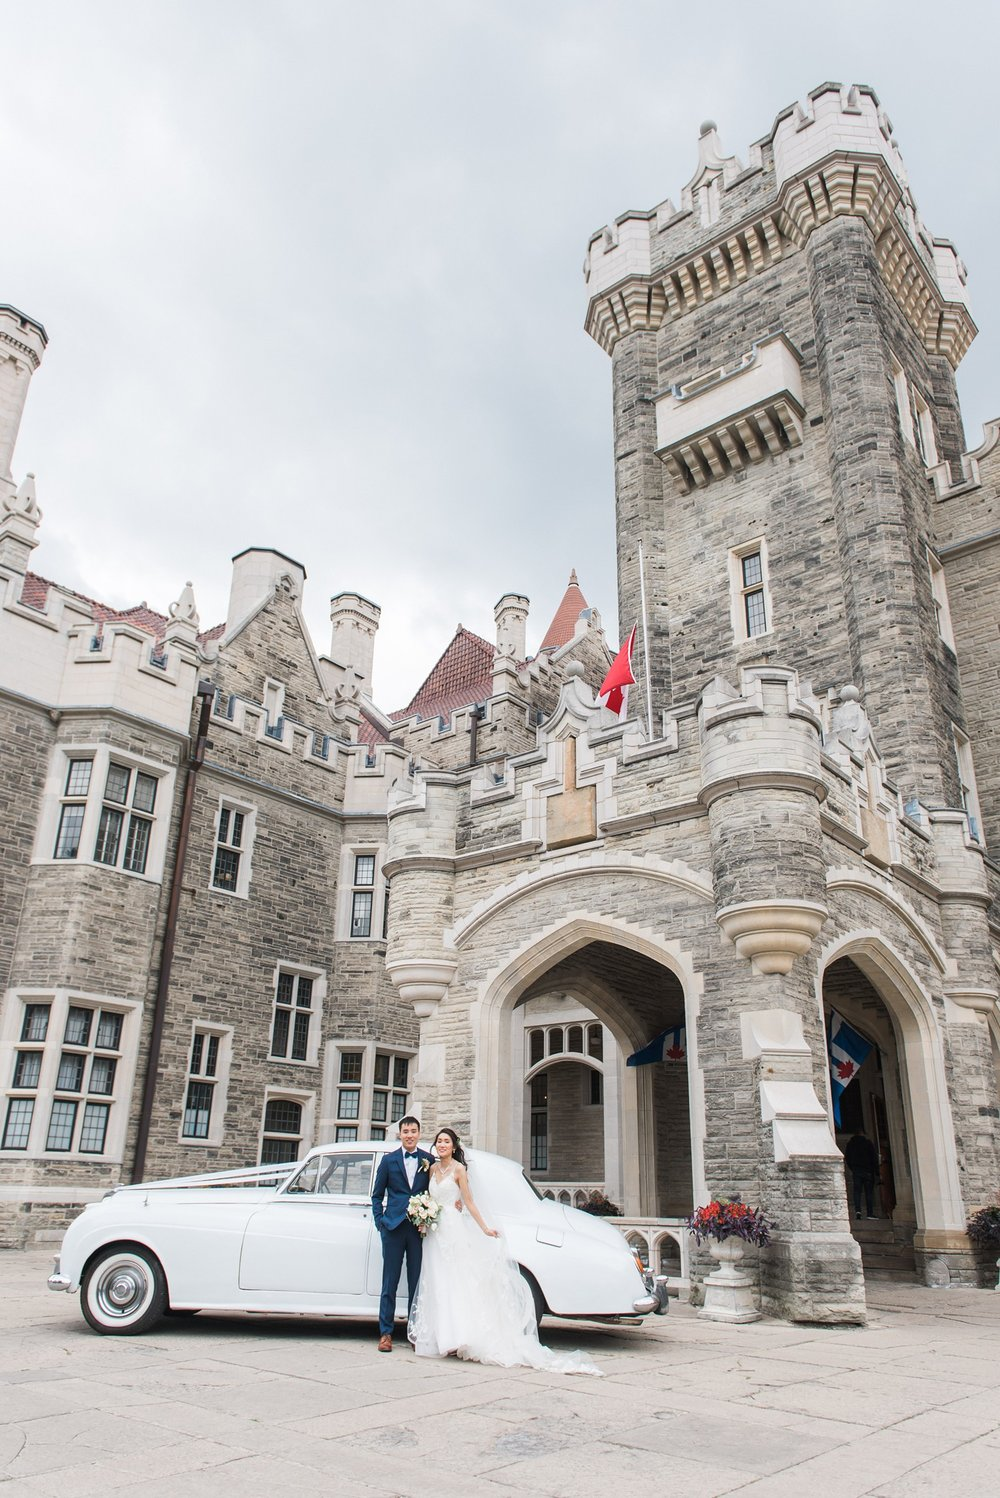 JC-Toronto_Destination_Casa_Loma_Wedding_Photos-Rhythm_Photography-052.jpg